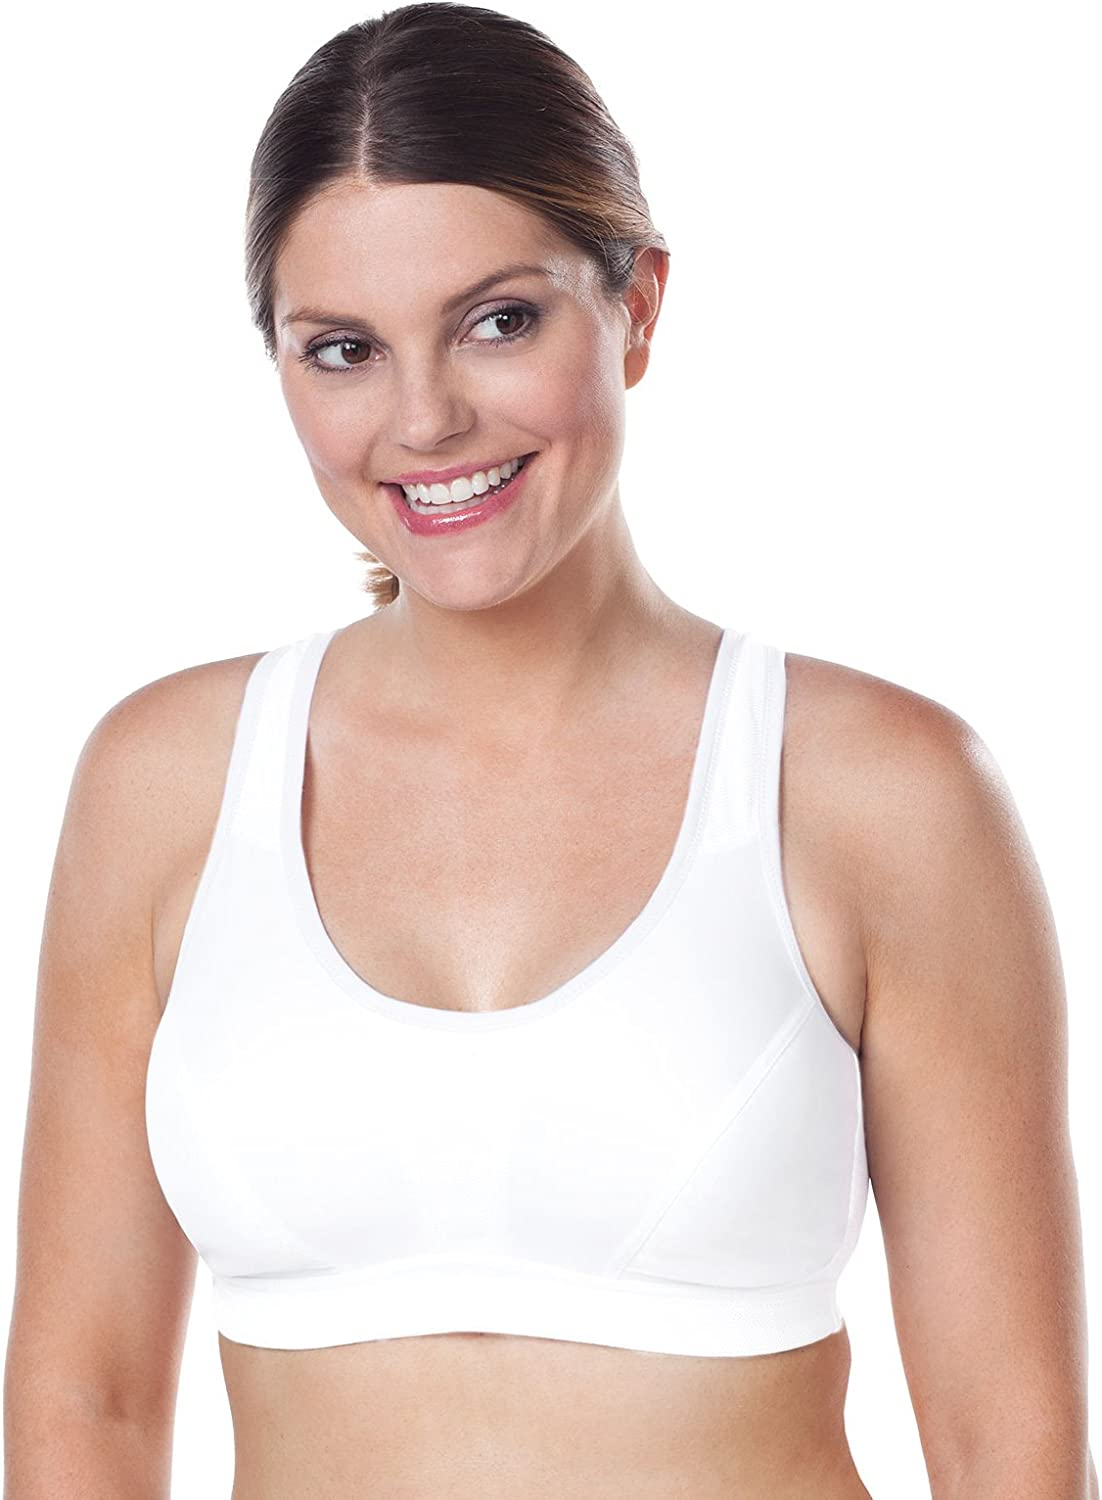 Leading Lady Womens Plus-Size Sports Bra with Crossover Straps Leading Lady Women/'s Intimate Apparel 5430